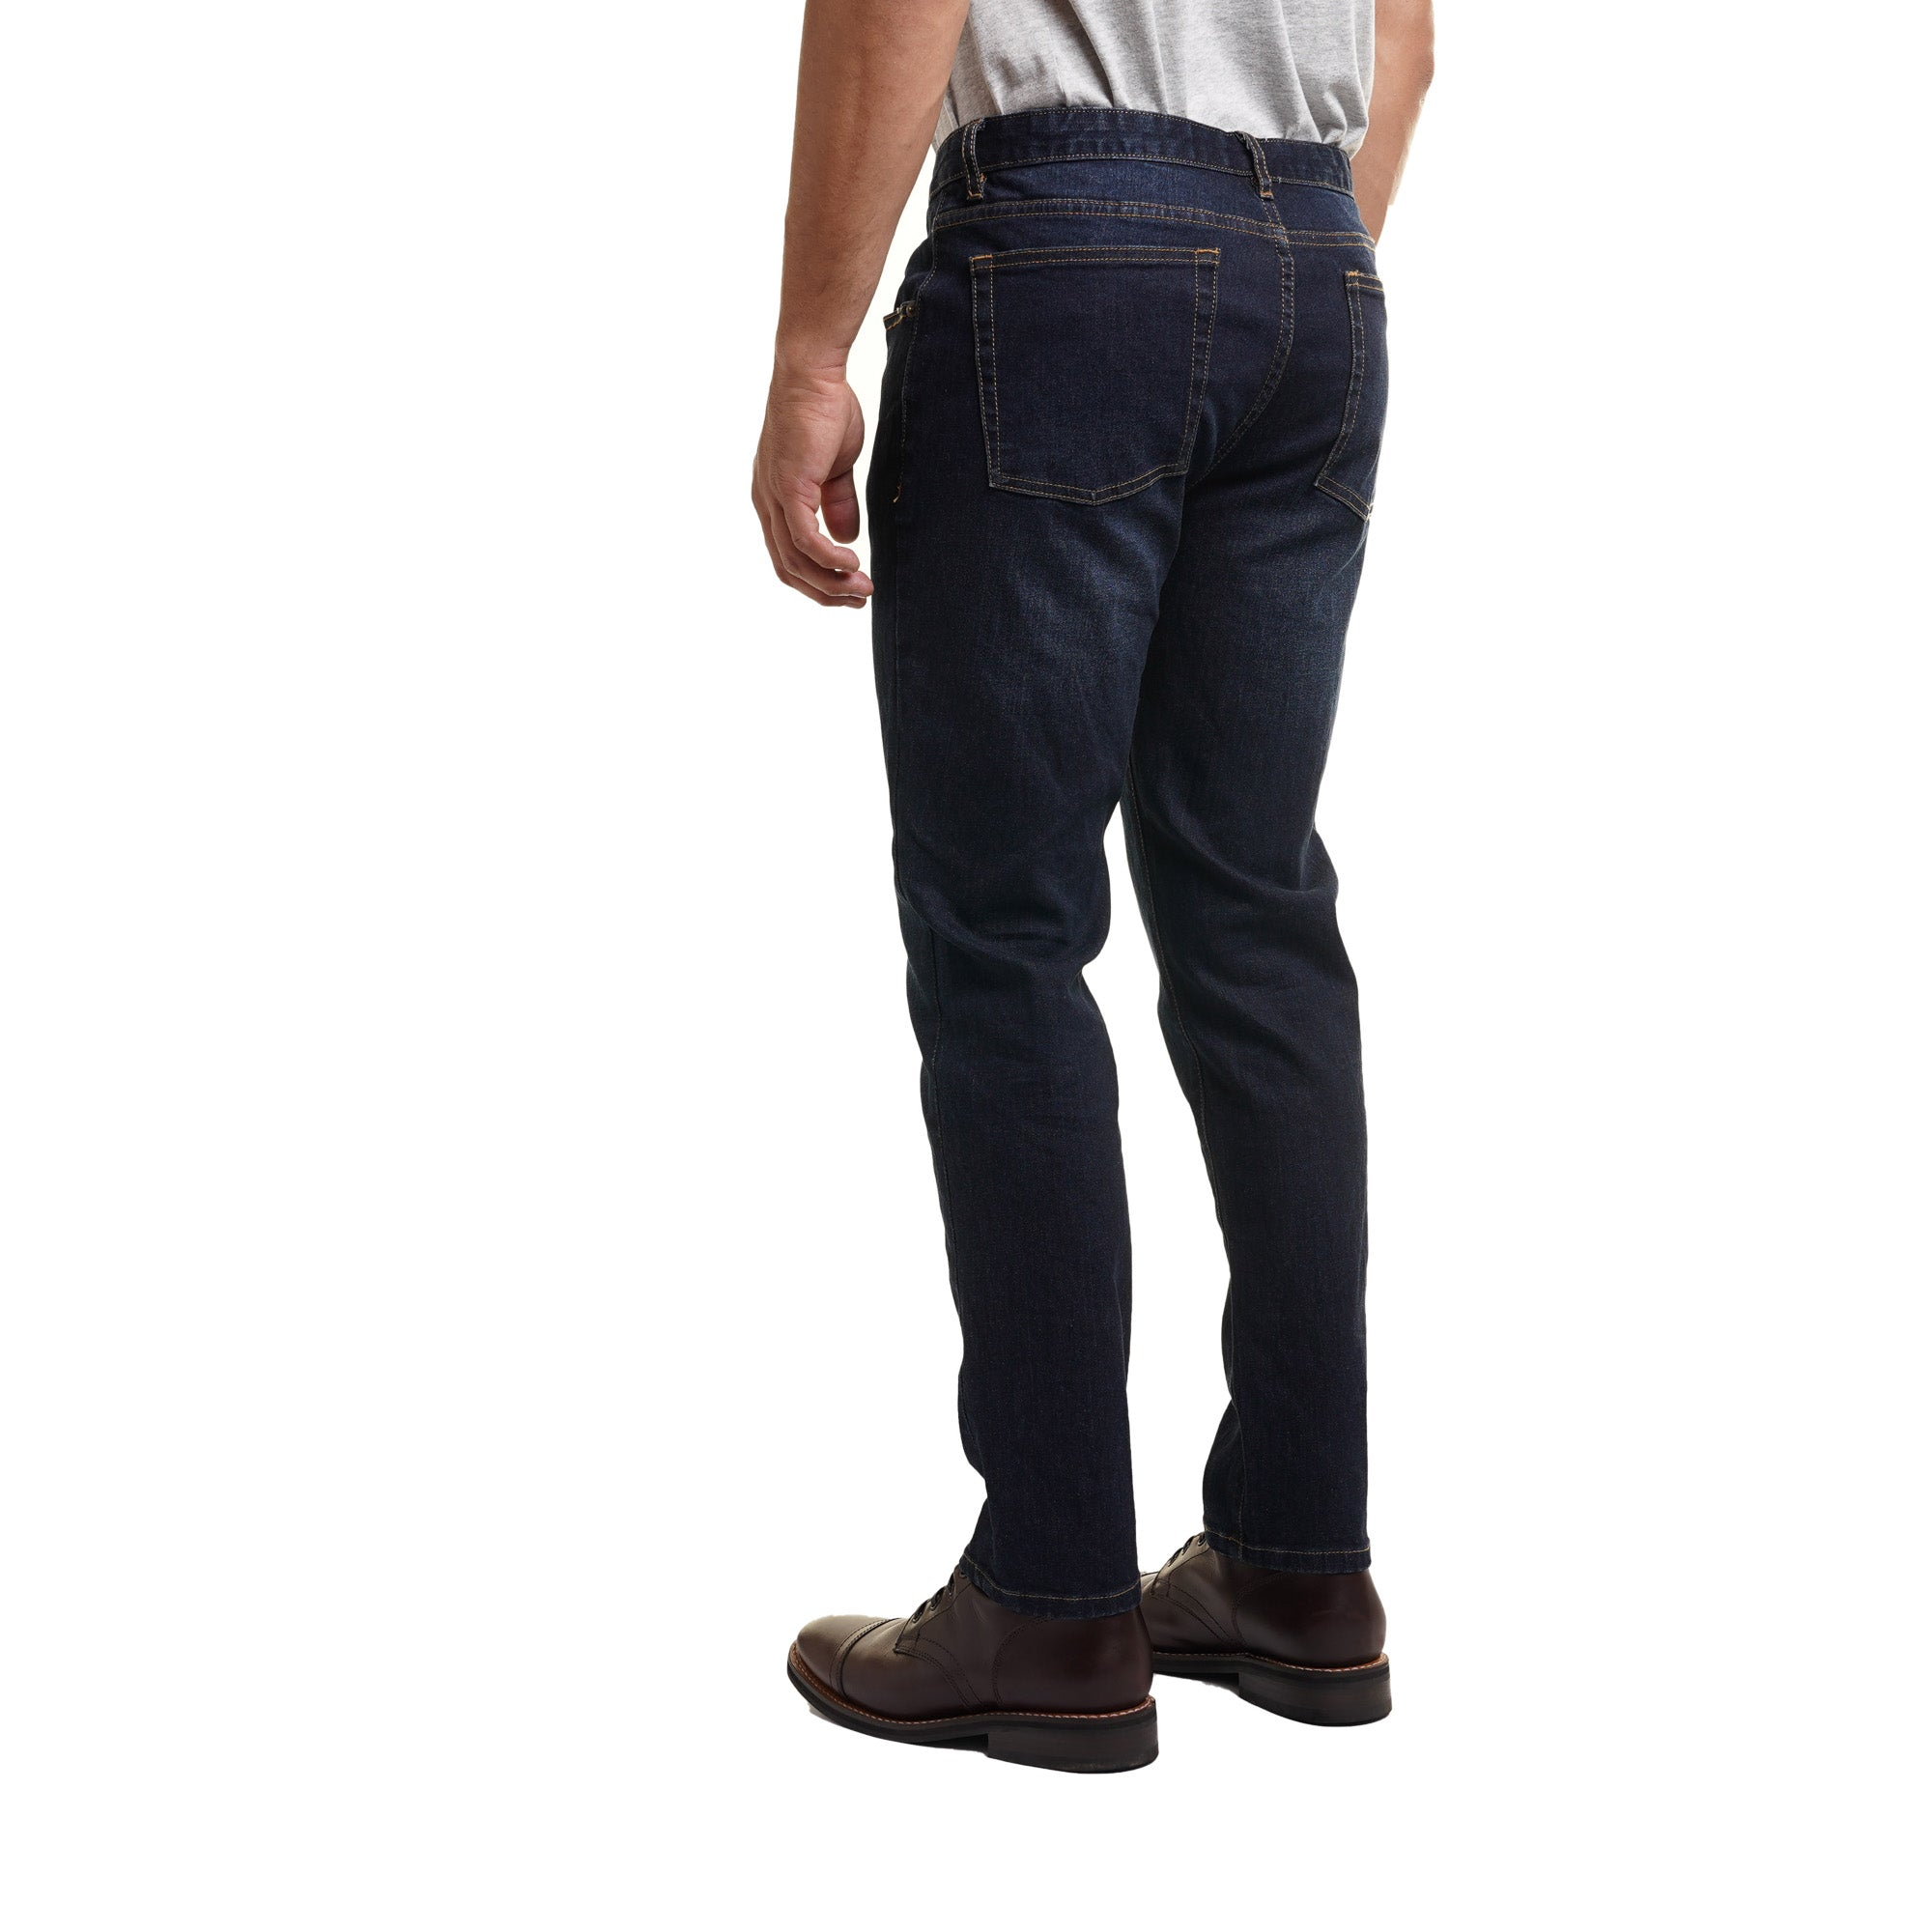 Johnny Stretch Jeans Slim Fit - Dark Wash